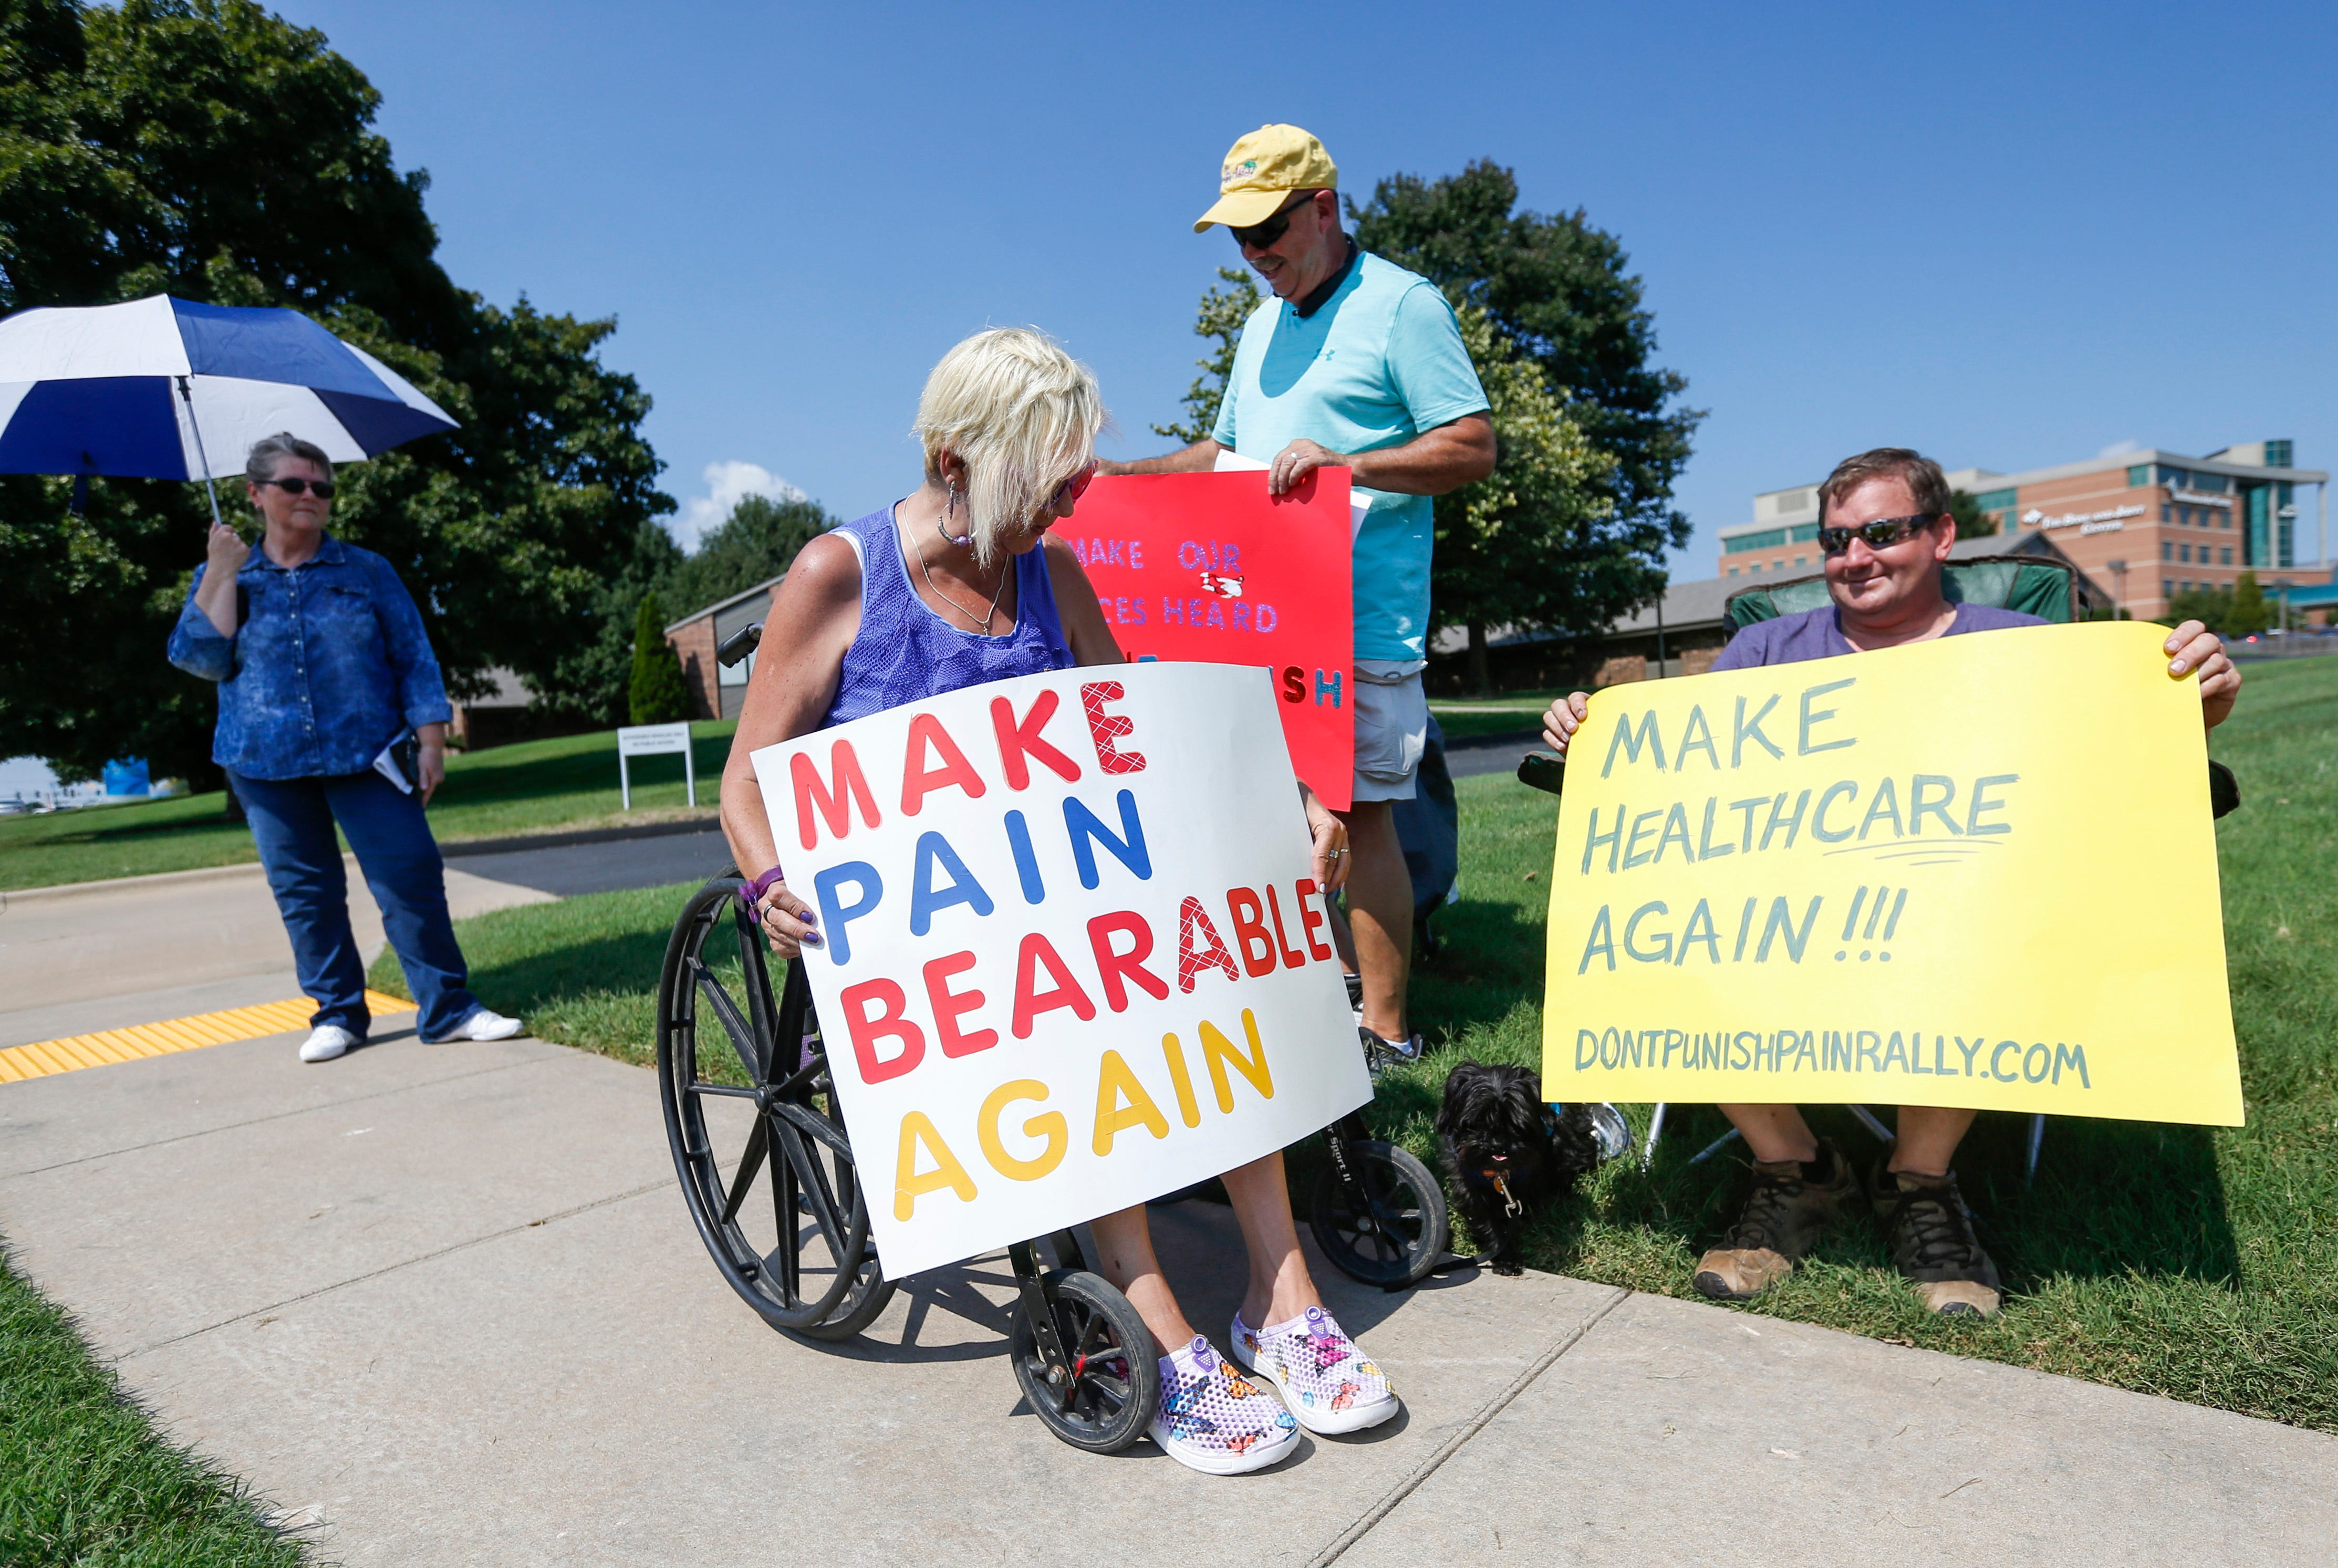 From right, Daniel Sweatt, Ray Oldham, and Kathleen Sweatt hold ups signs during a rally outside of Cox South Hospital on Tuesday, Sep. 18, 2018. Chronic Pain patients held the rally because they believe they are being punished by recent CDC guidelines that discourage doctors from writing prescriptions for pain medication.